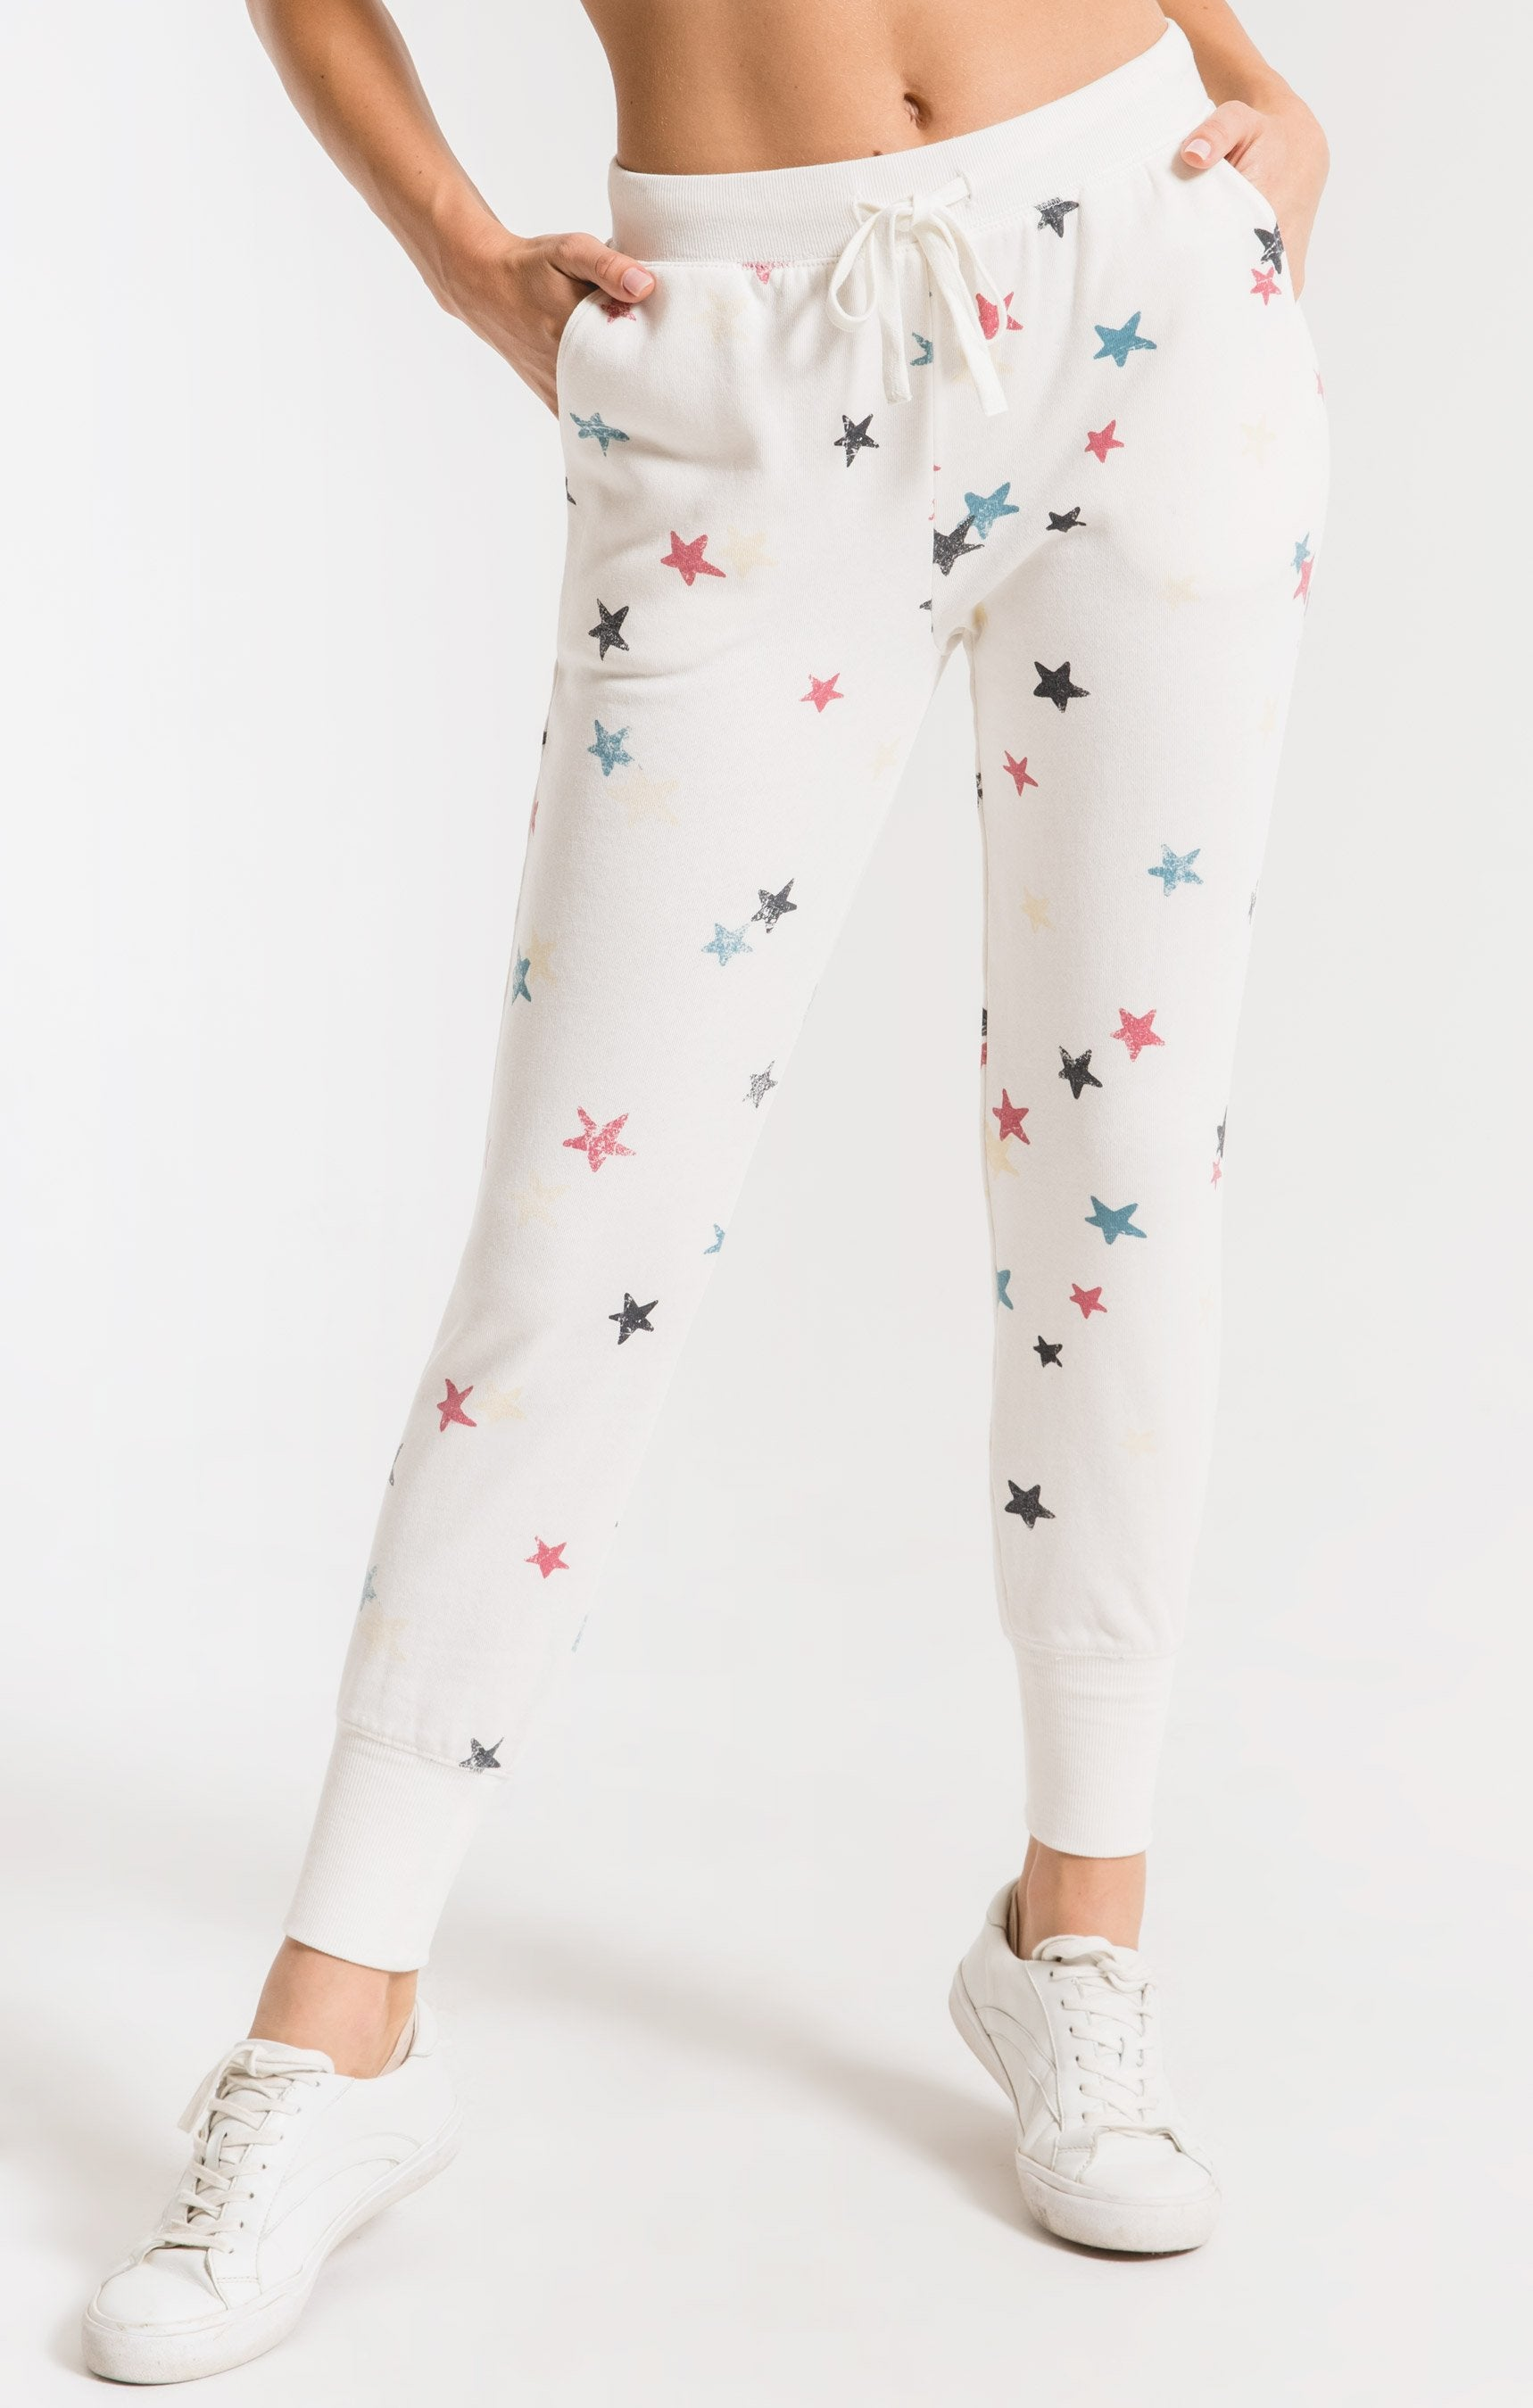 Pants Distressed Star Jogger Desert White Combo